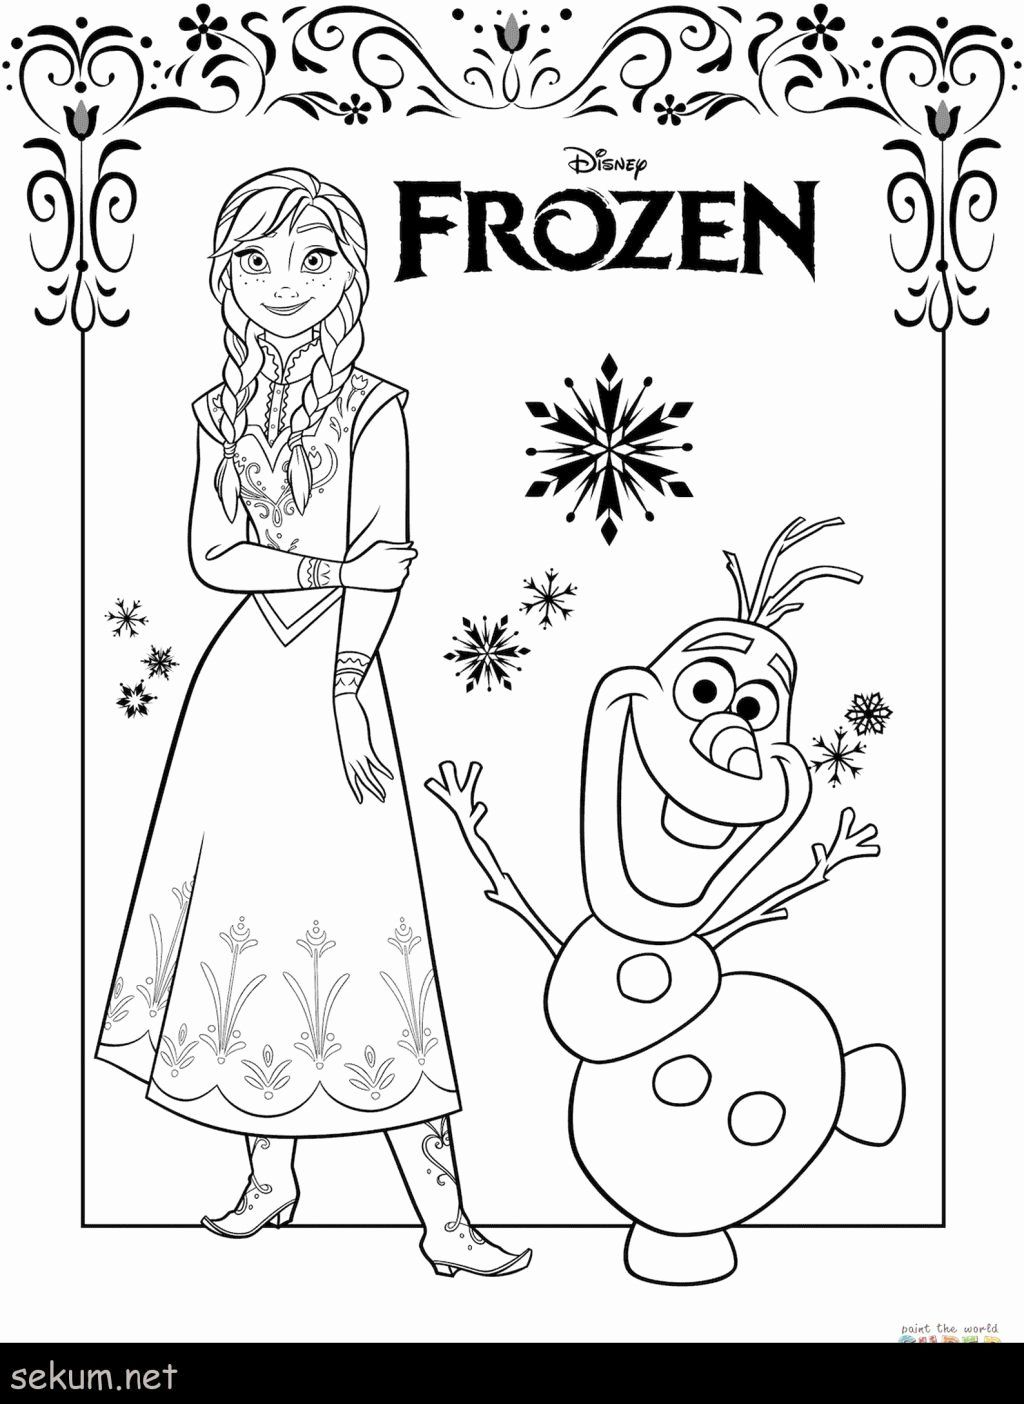 Free Frozen Coloring Sheets Fresh Coloring Arts Frozen Coloring Sheets Pdf Frozen Coloring Elsa Coloring Pages Frozen Coloring Disney Coloring Pages